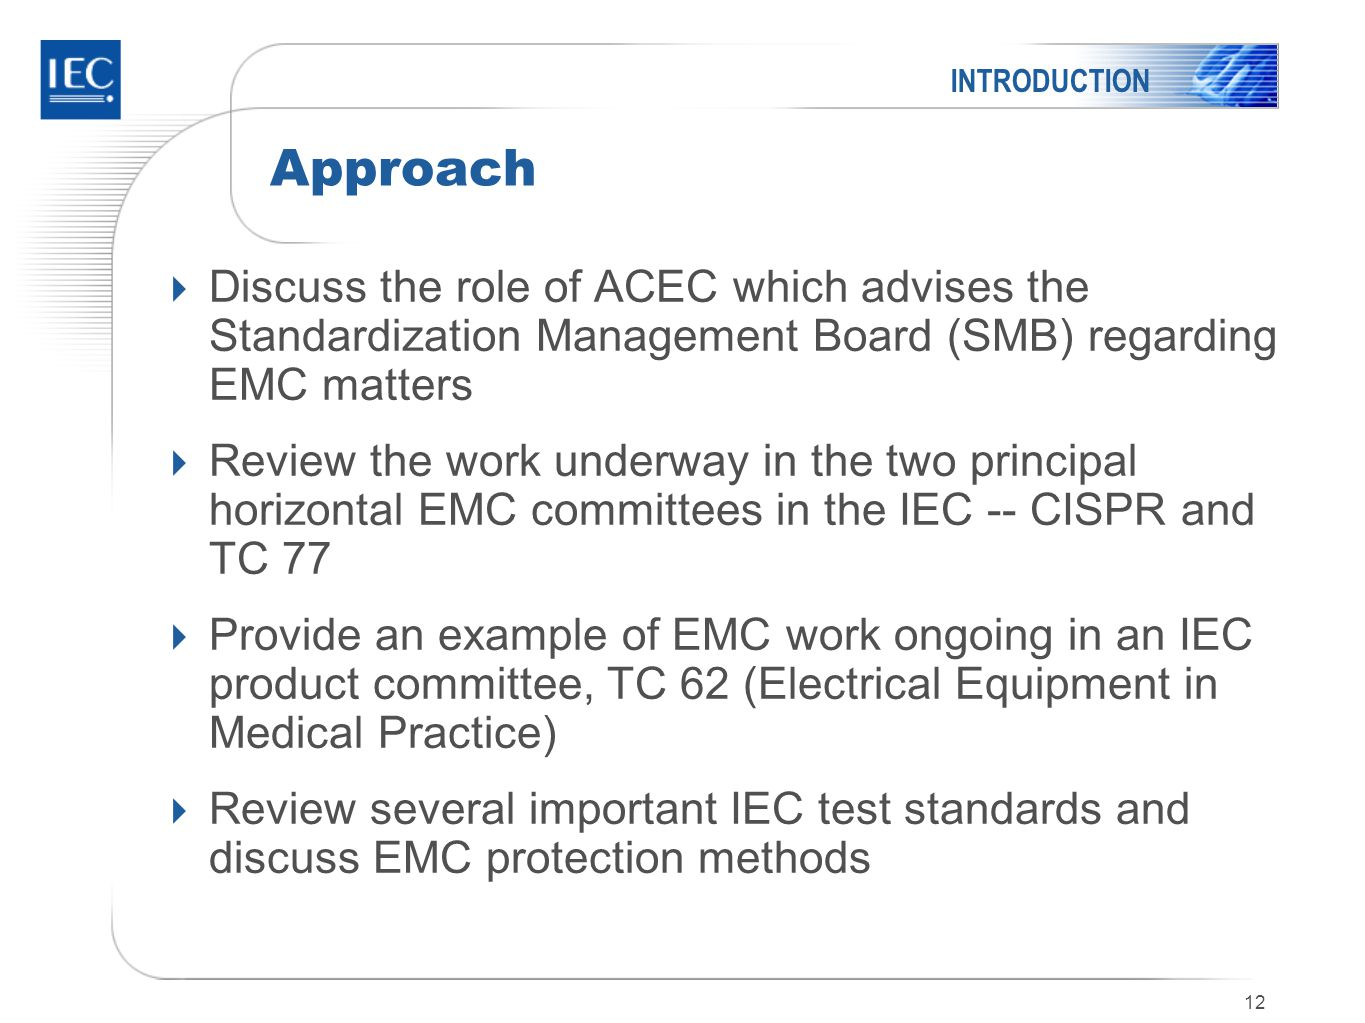 12 Approach  Discuss the role of ACEC which advises the Standardization Management Board (SMB) regarding EMC matters  Review the work underway in the two principal horizontal EMC committees in the IEC -- CISPR and TC 77  Provide an example of EMC work ongoing in an IEC product committee, TC 62 (Electrical Equipment in Medical Practice)  Review several important IEC test standards and discuss EMC protection methods INTRODUCTION